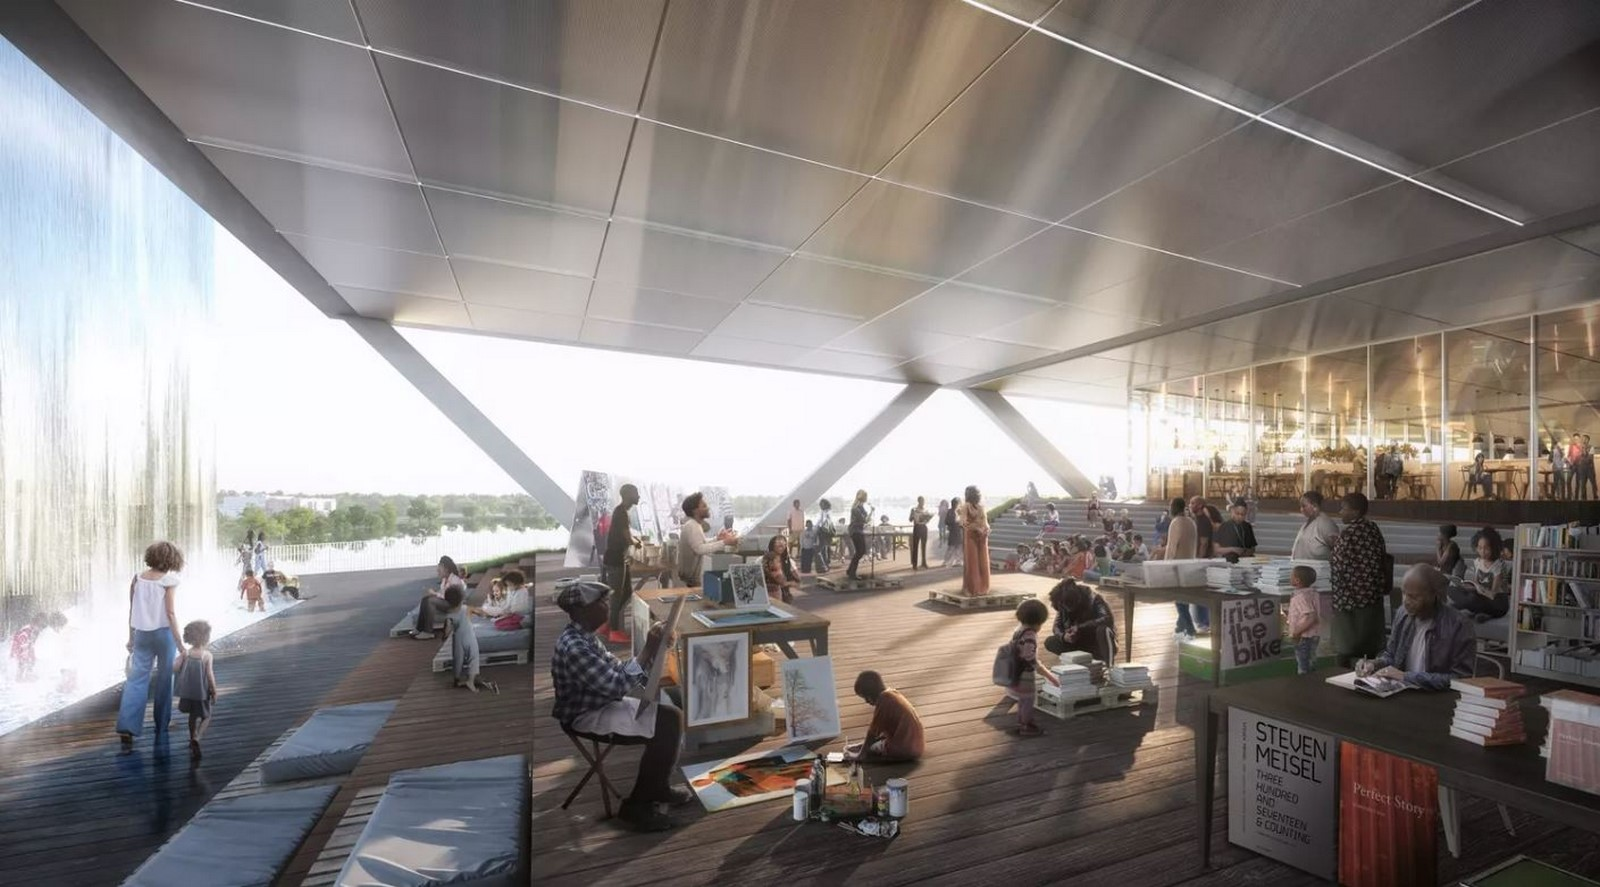 11th Street Bridge Park by Rem Koolhaas: Uniting the divided city - Sheet19